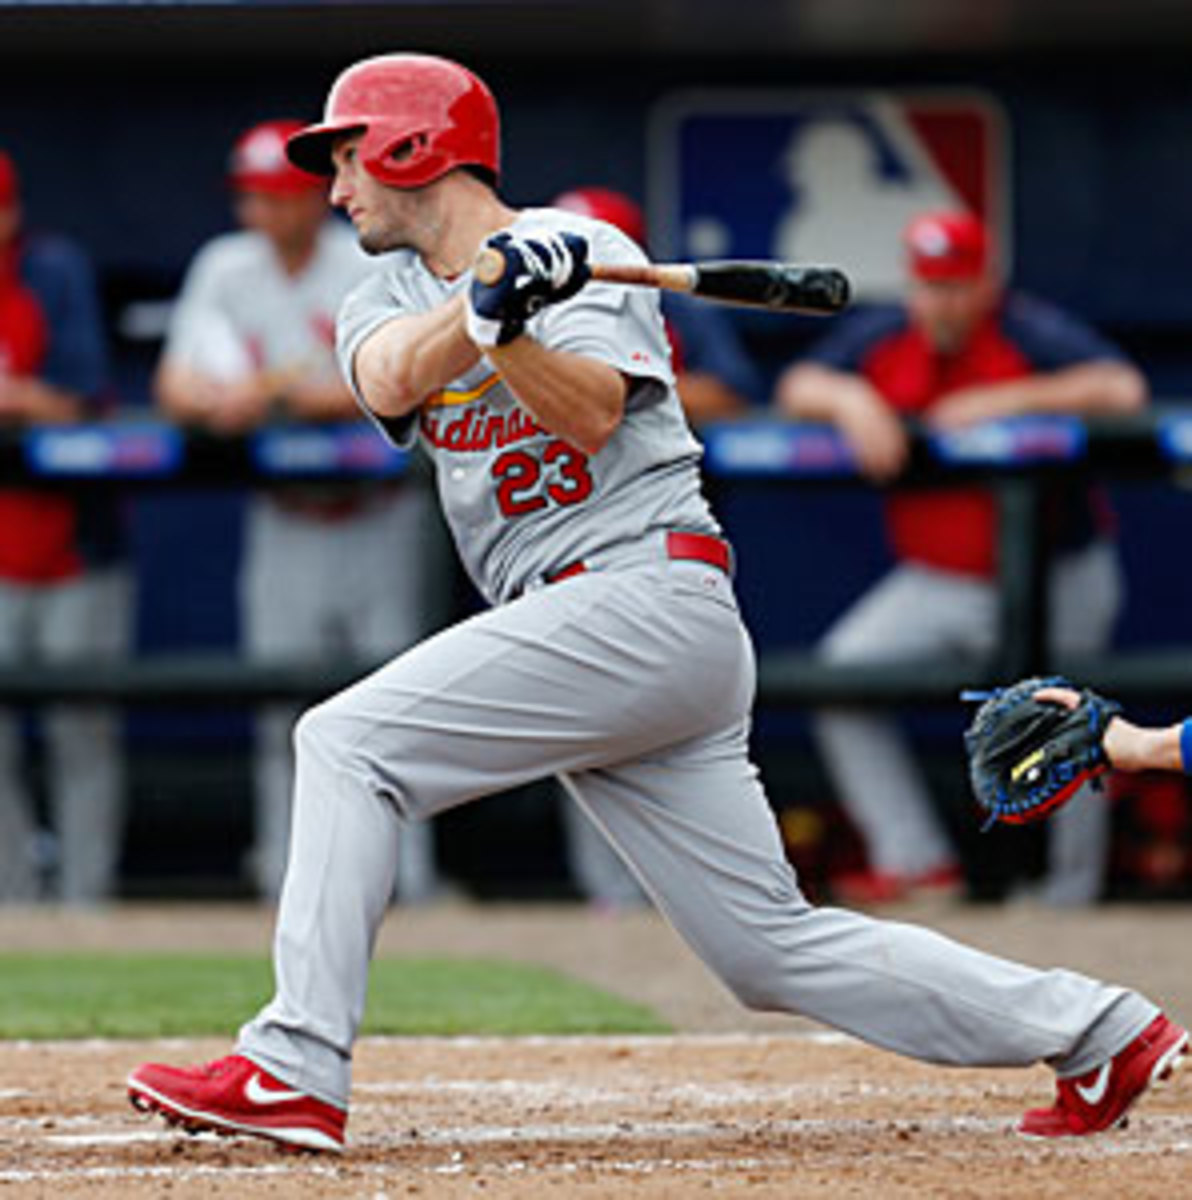 The Cardinals added David Freese to a lengthy list of injuries already this year but hope their third baseman will be ready by opening day.